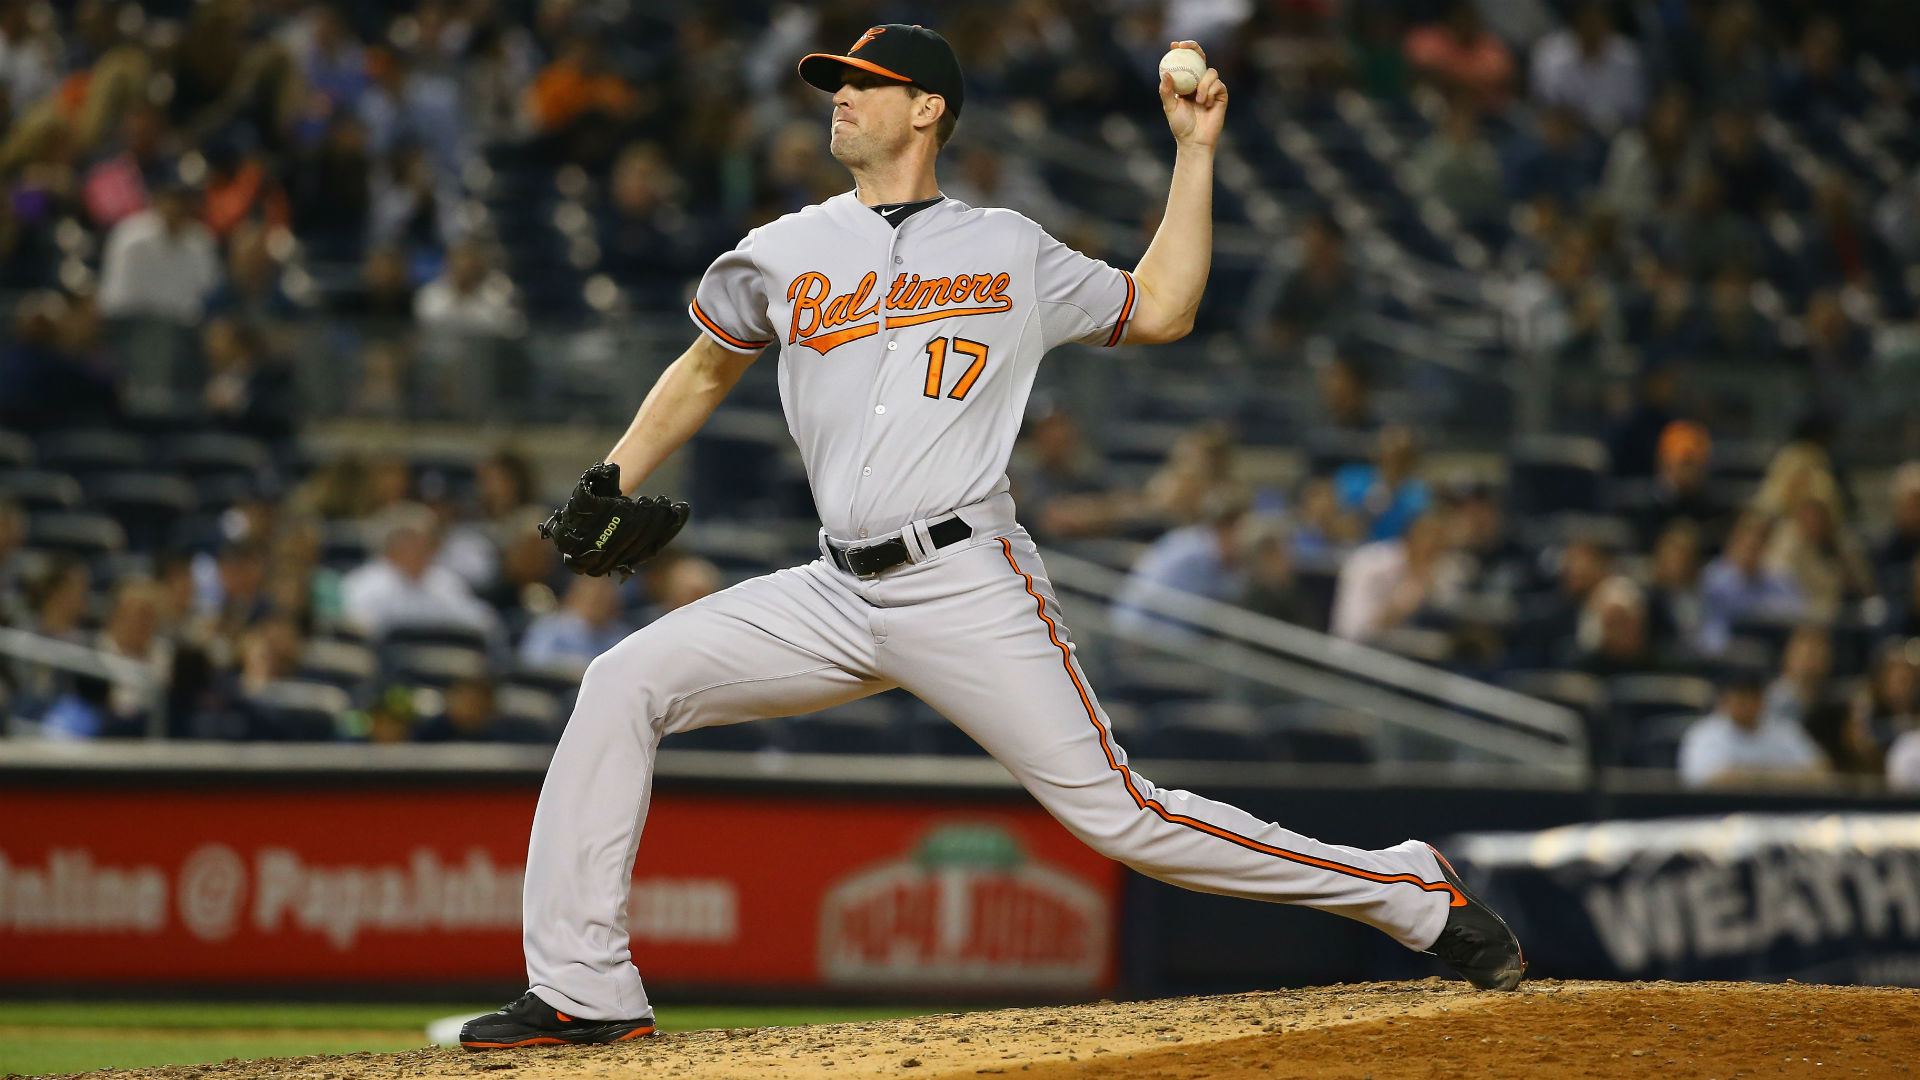 Matusz ejected for foreign substance